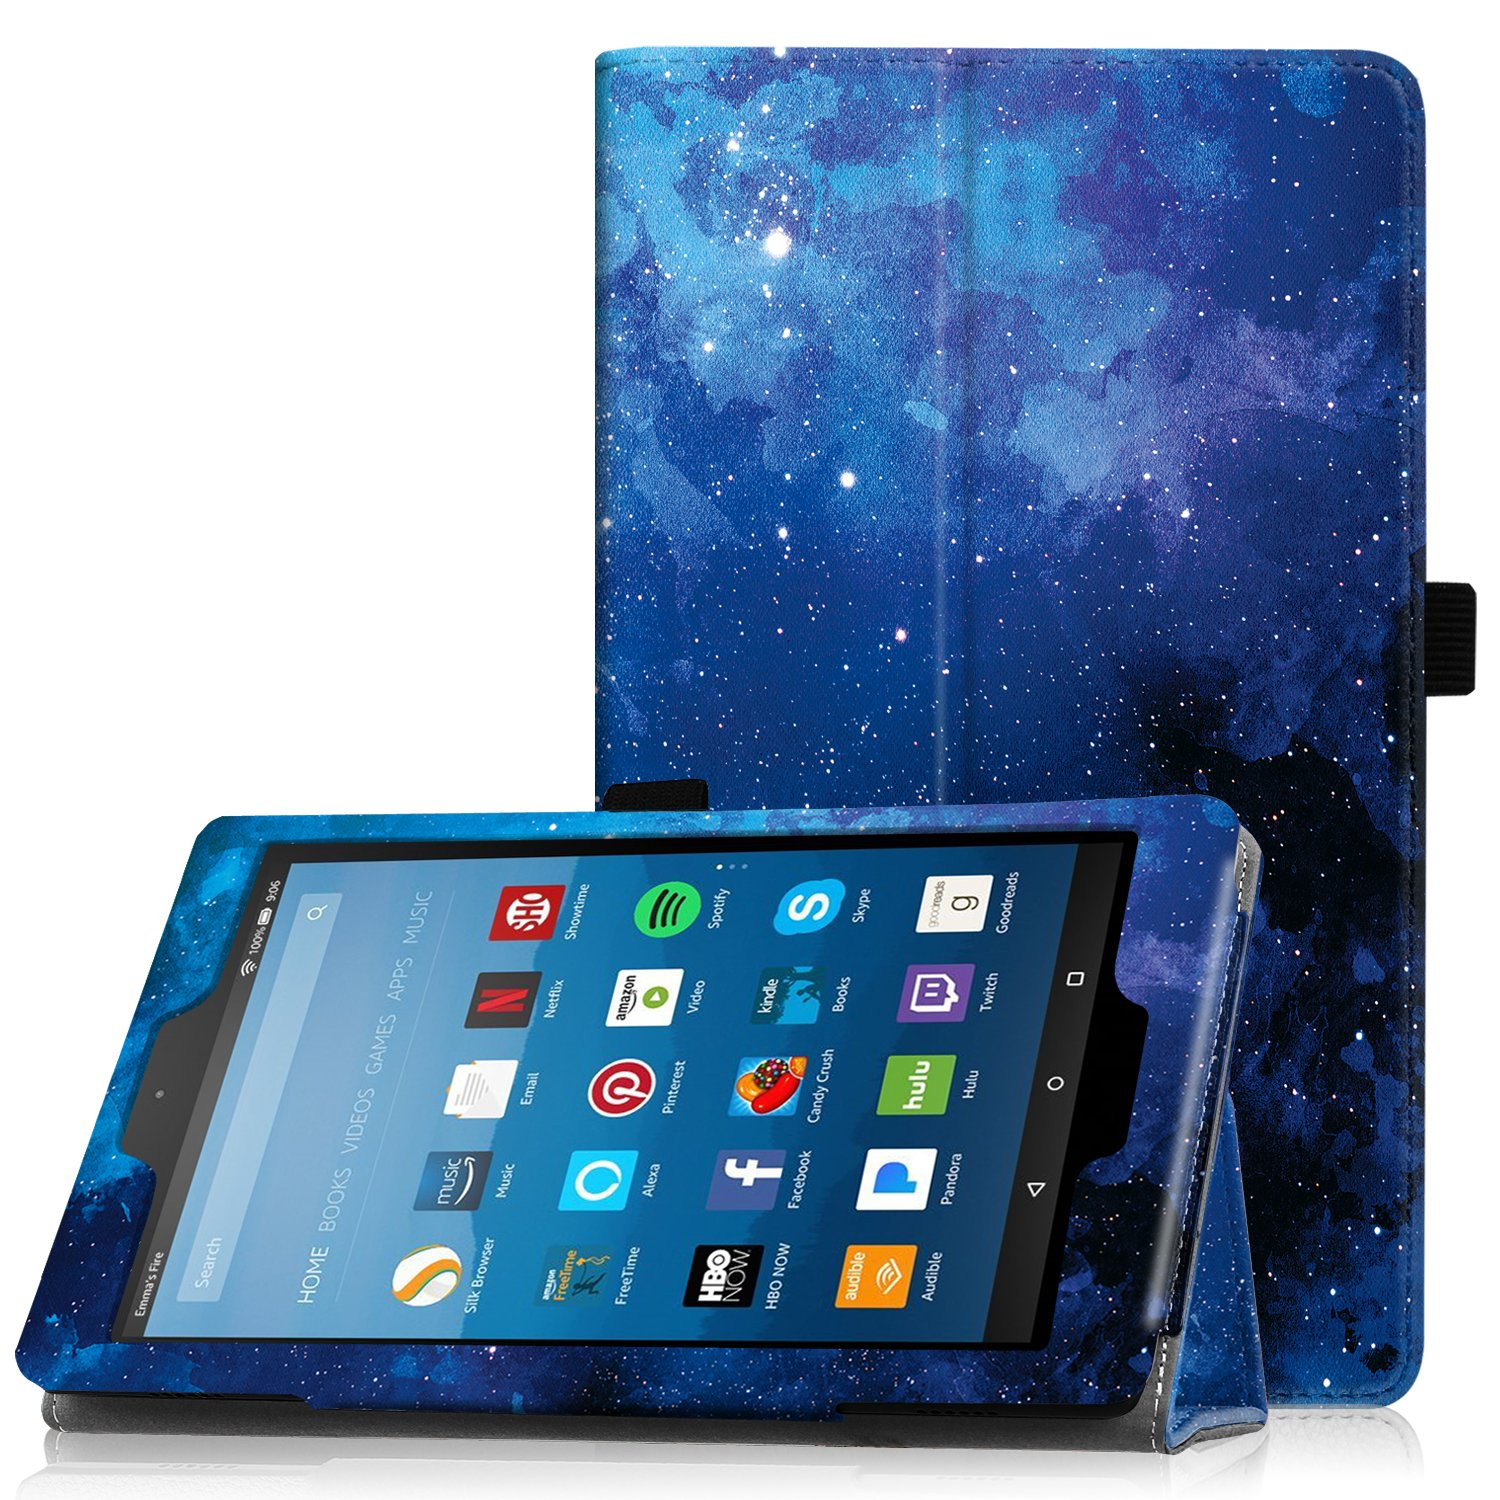 Famavala Folio Case Cover Compatible with 8'' Fire HD 8 Tablet [8th Generation 2018 / 7th Generation 2017 ] (BlueSky) by Famavala